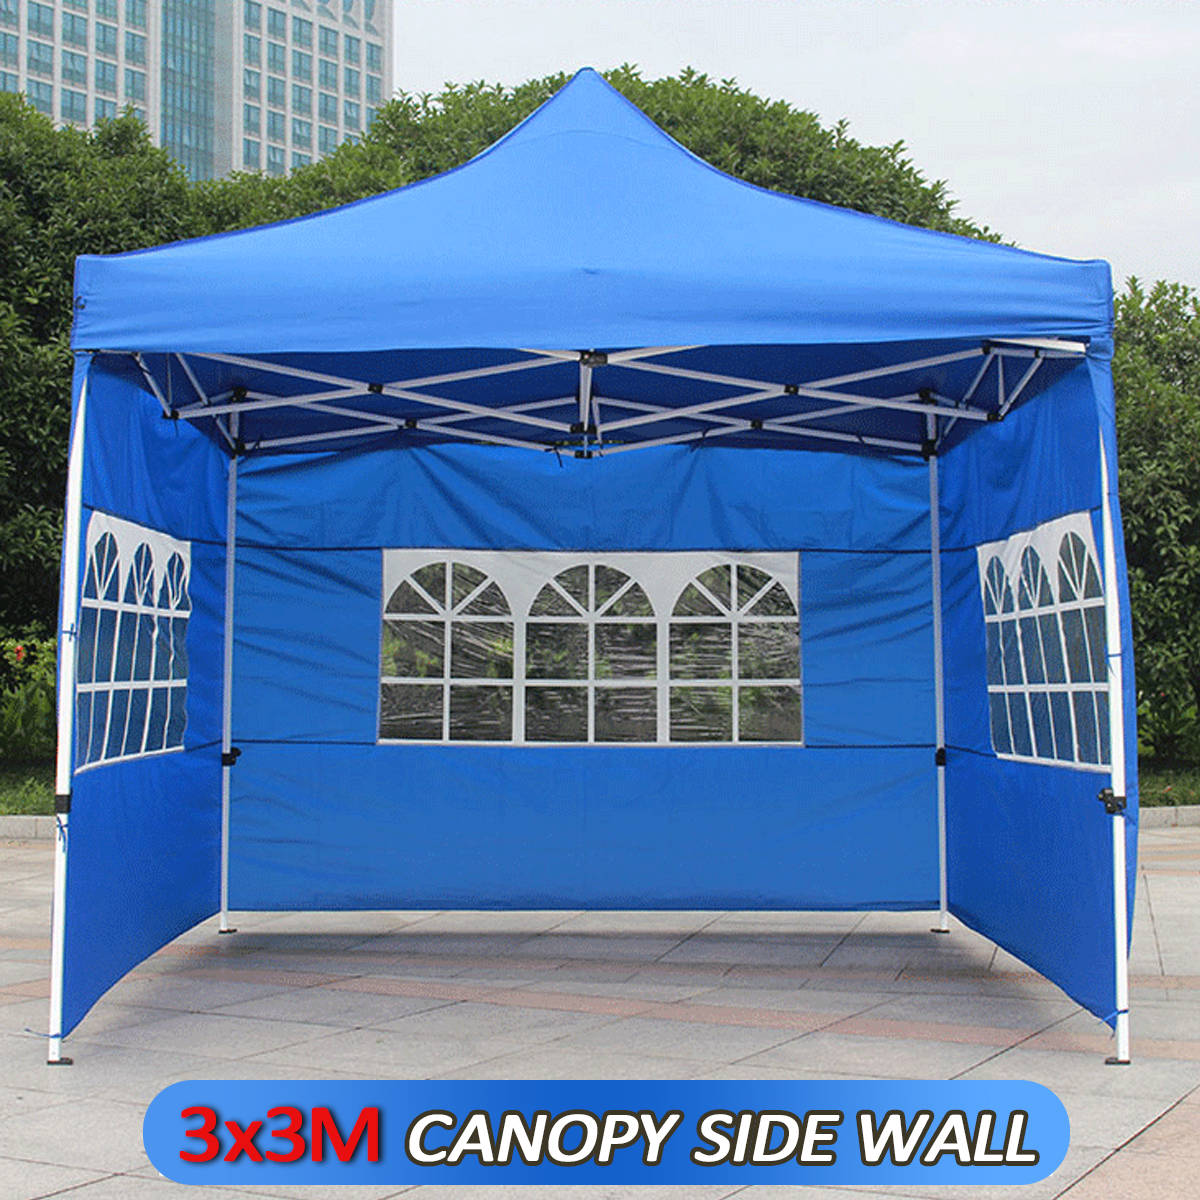 Oxford Cloth Party Tent Wall Sides Waterproof Garden Patio Outdoor Canopy 3x3m Sun Wall Sunshade Shelter Tarp Sidewall Sunshade